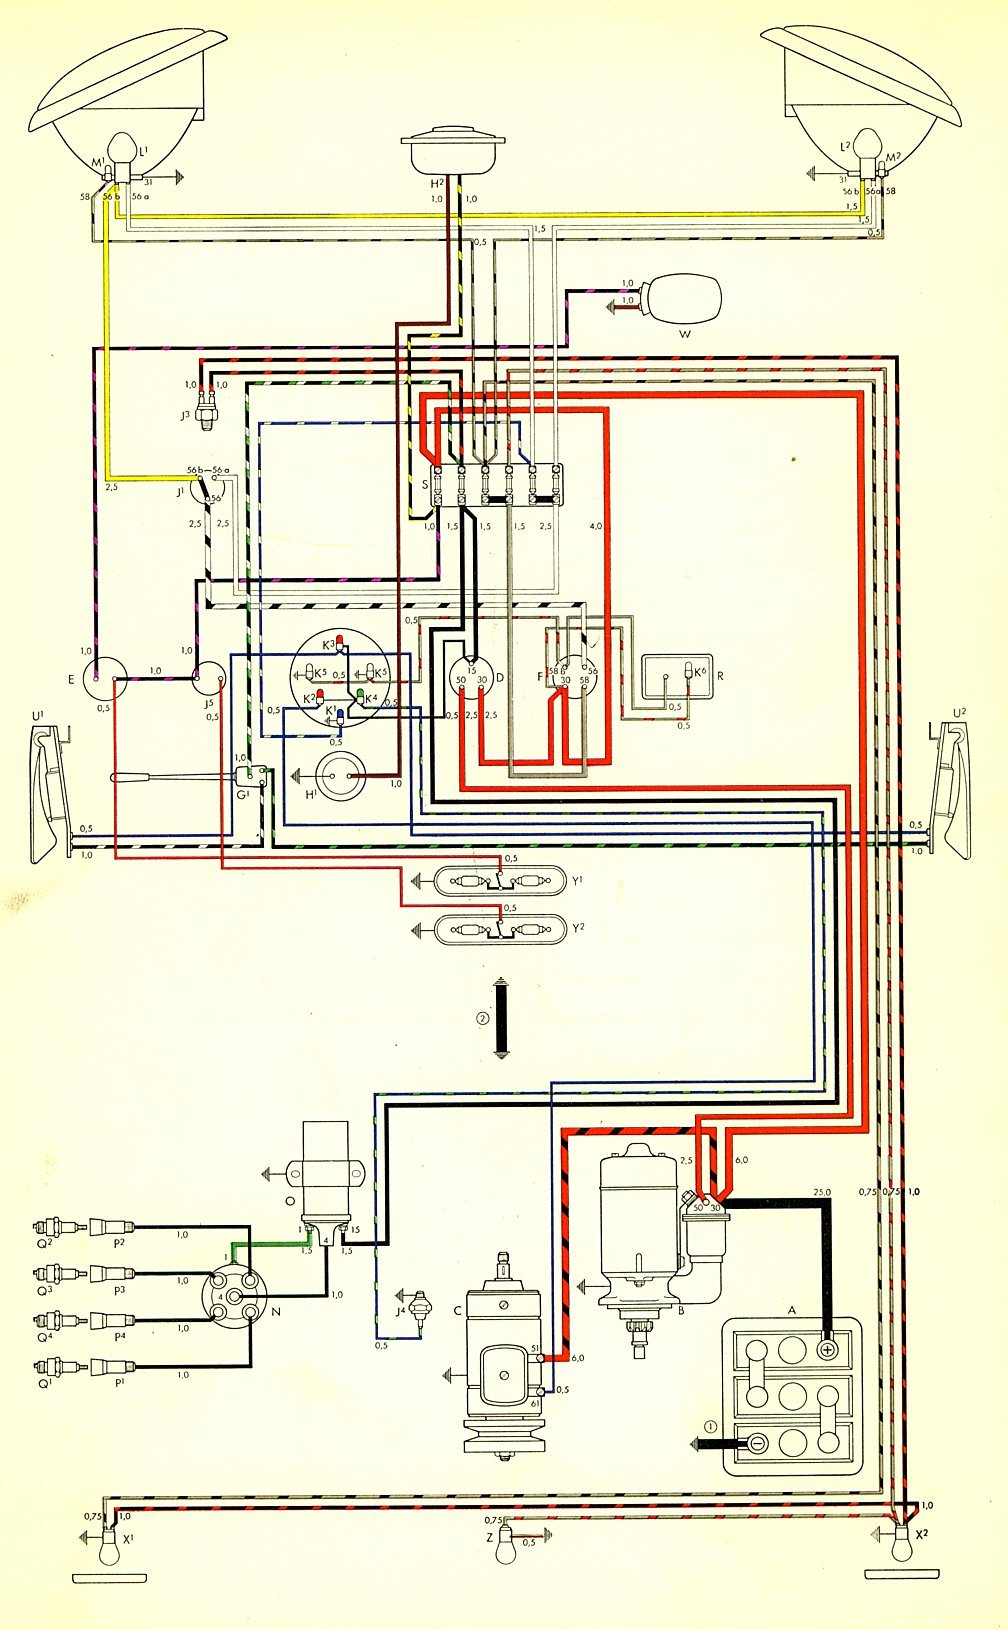 thesamba com type 2 wiring diagrams rh thesamba com 1970 vw beetle wiring diagram 1970 vw bus wiring diagram